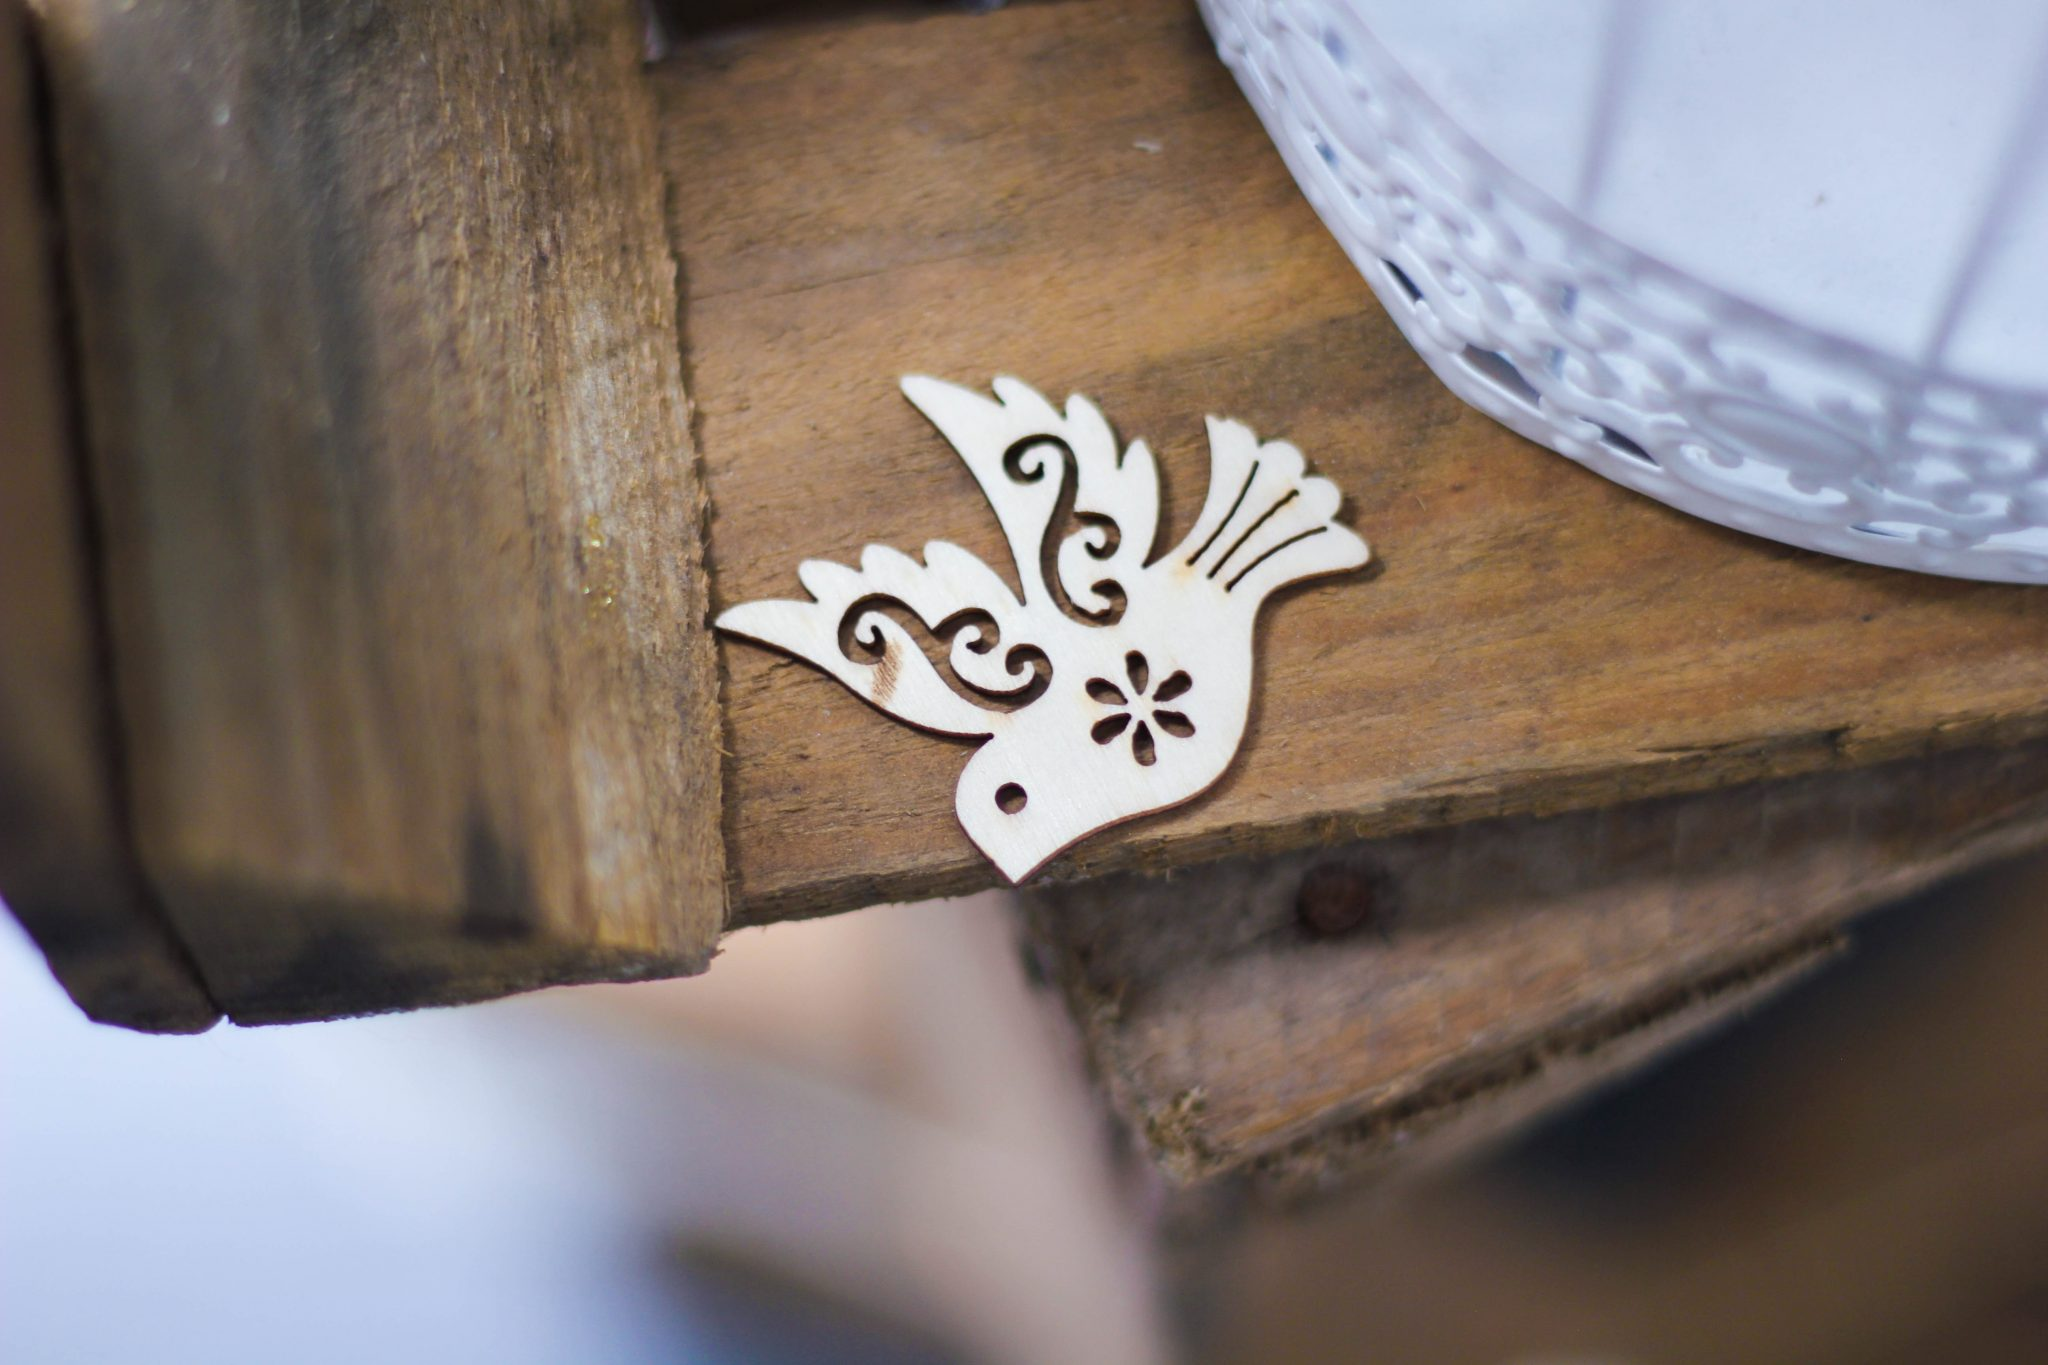 Dove cut out on wooden table